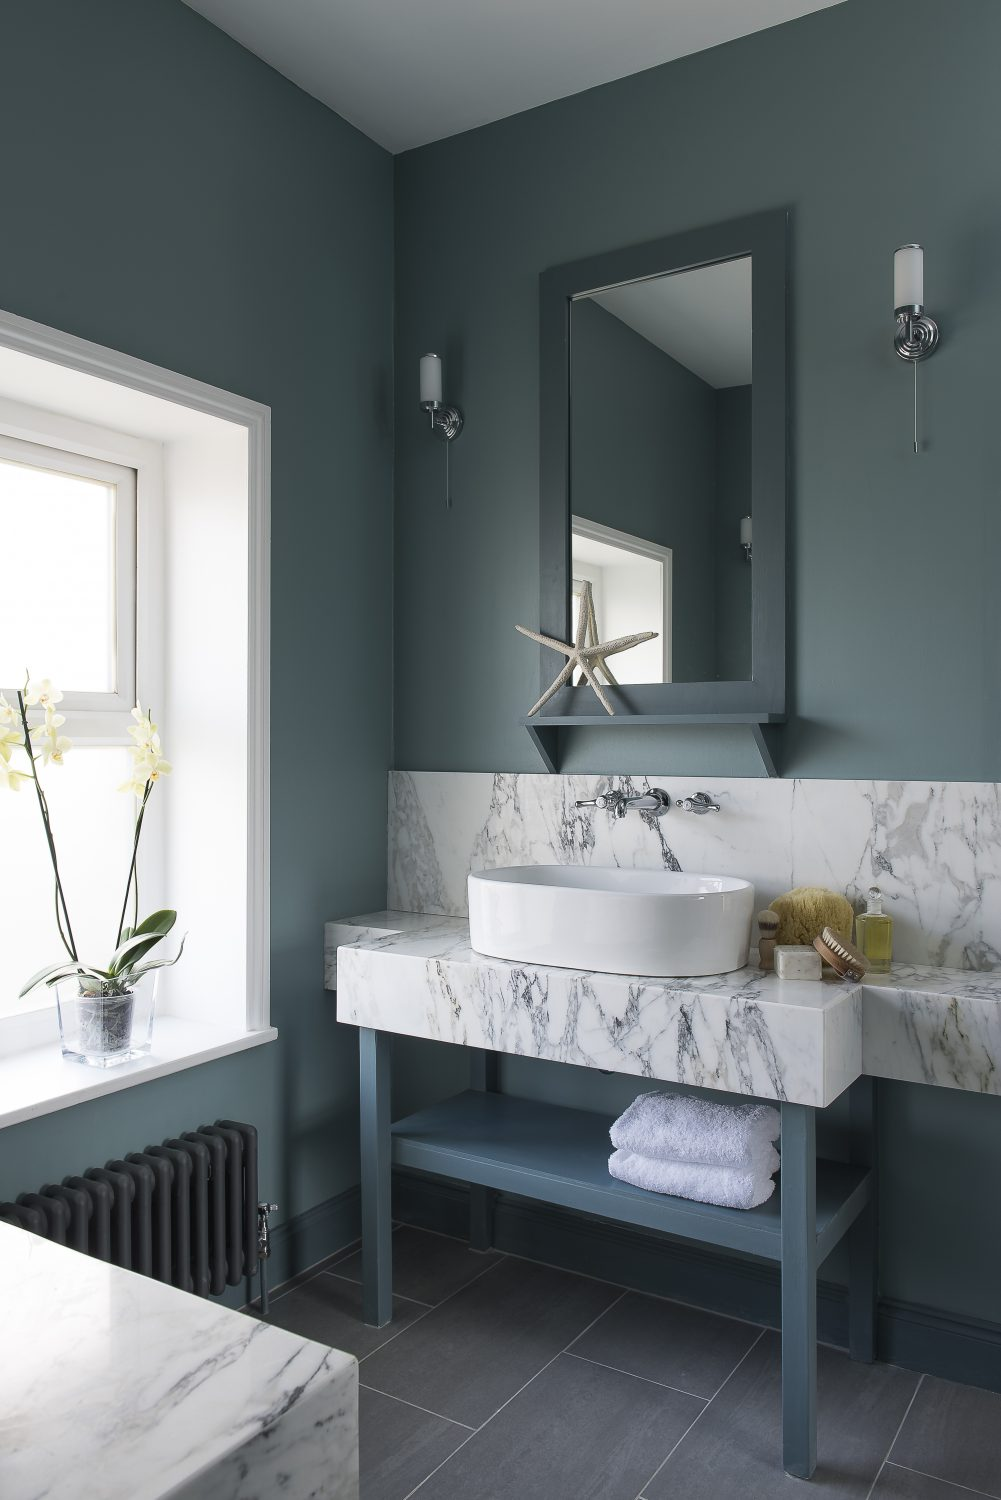 A beautiful petrol-blue bathroom has opposing counter-top basins